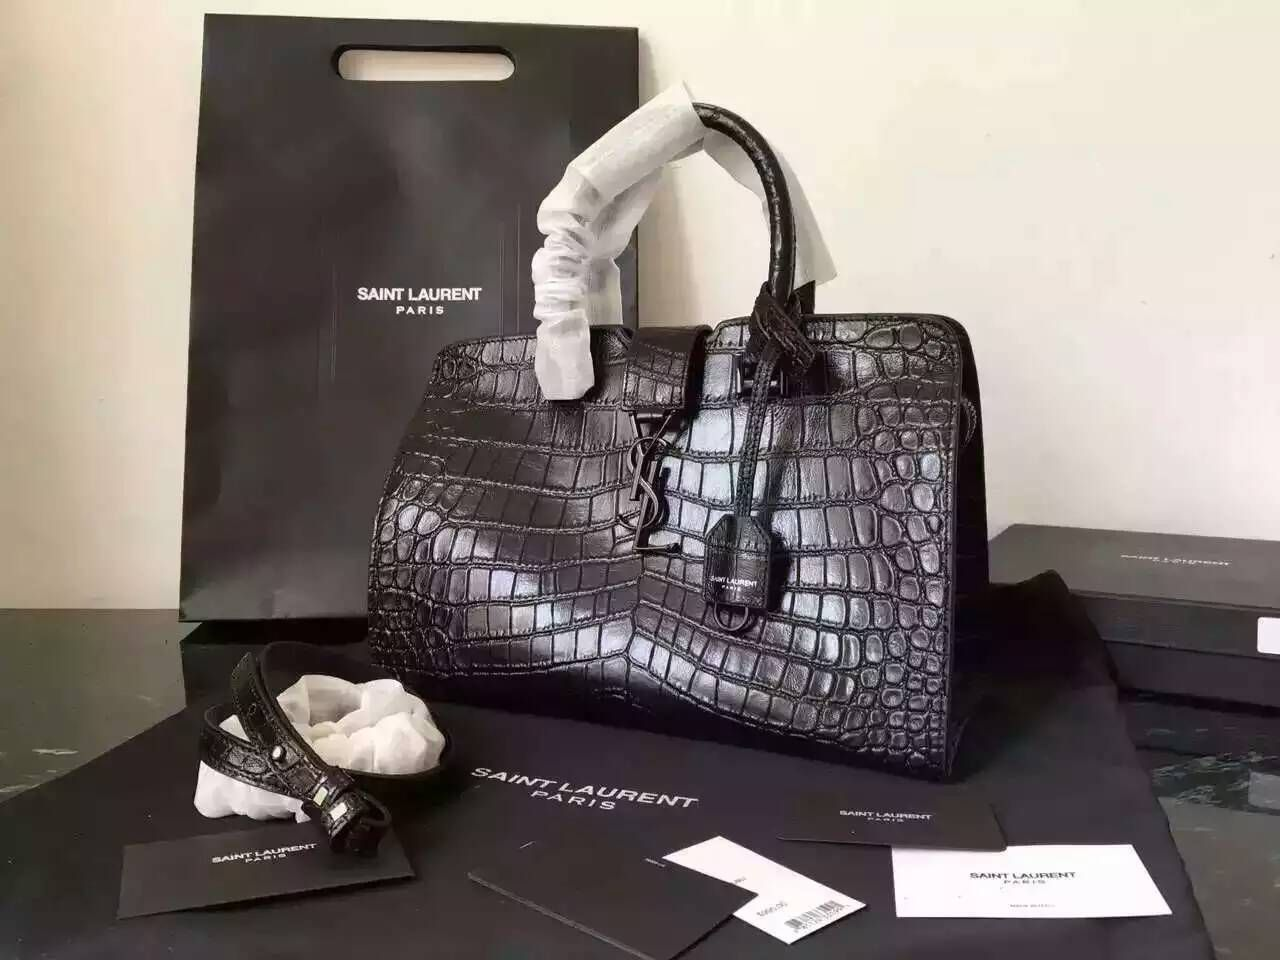 bf31f41339b7 S S 2016 New Saint Laurent Bag Cheap Sale-Saint Laurent Small Monogram  Cabas Bag in Black Crocodile Embossed Leather